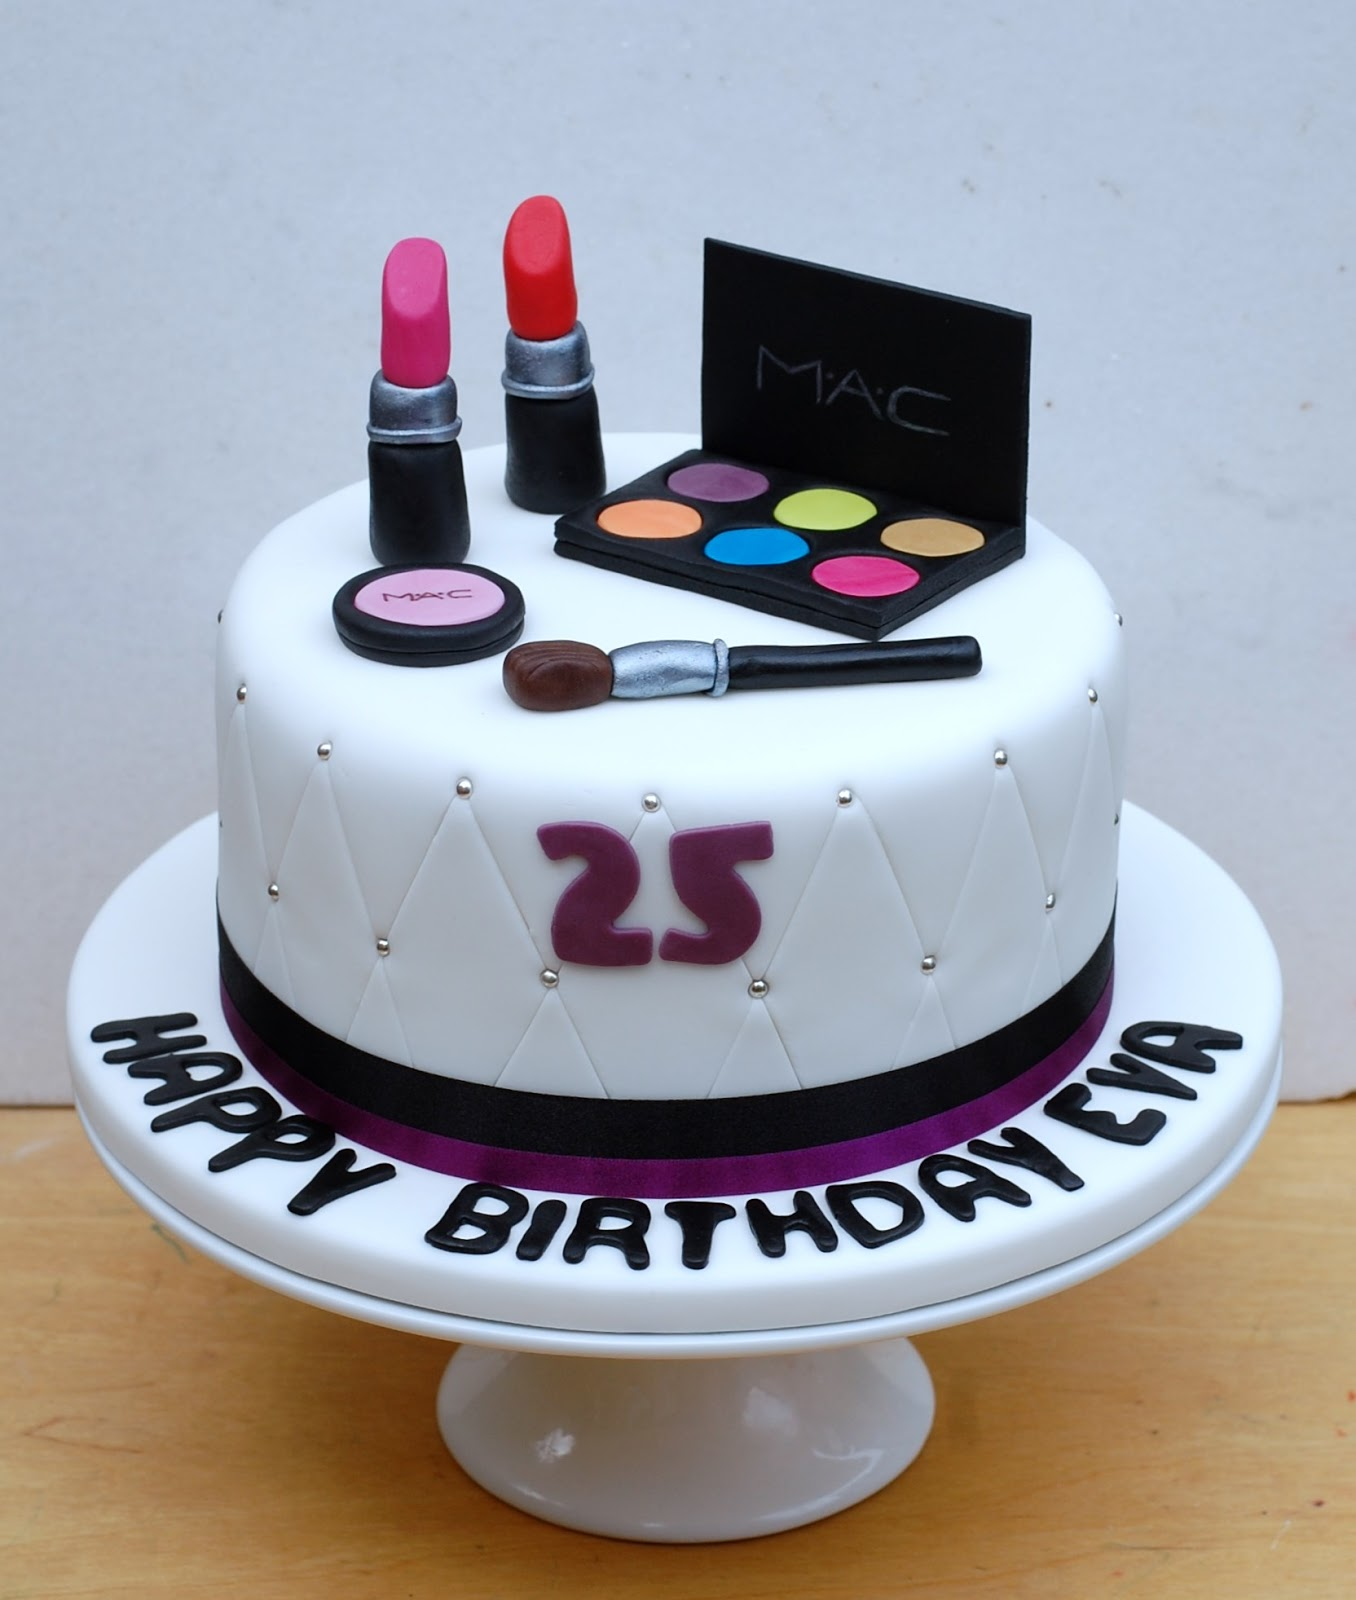 Inspirational Makeup Birthday Cake Birthdaymakeup themed Birthday